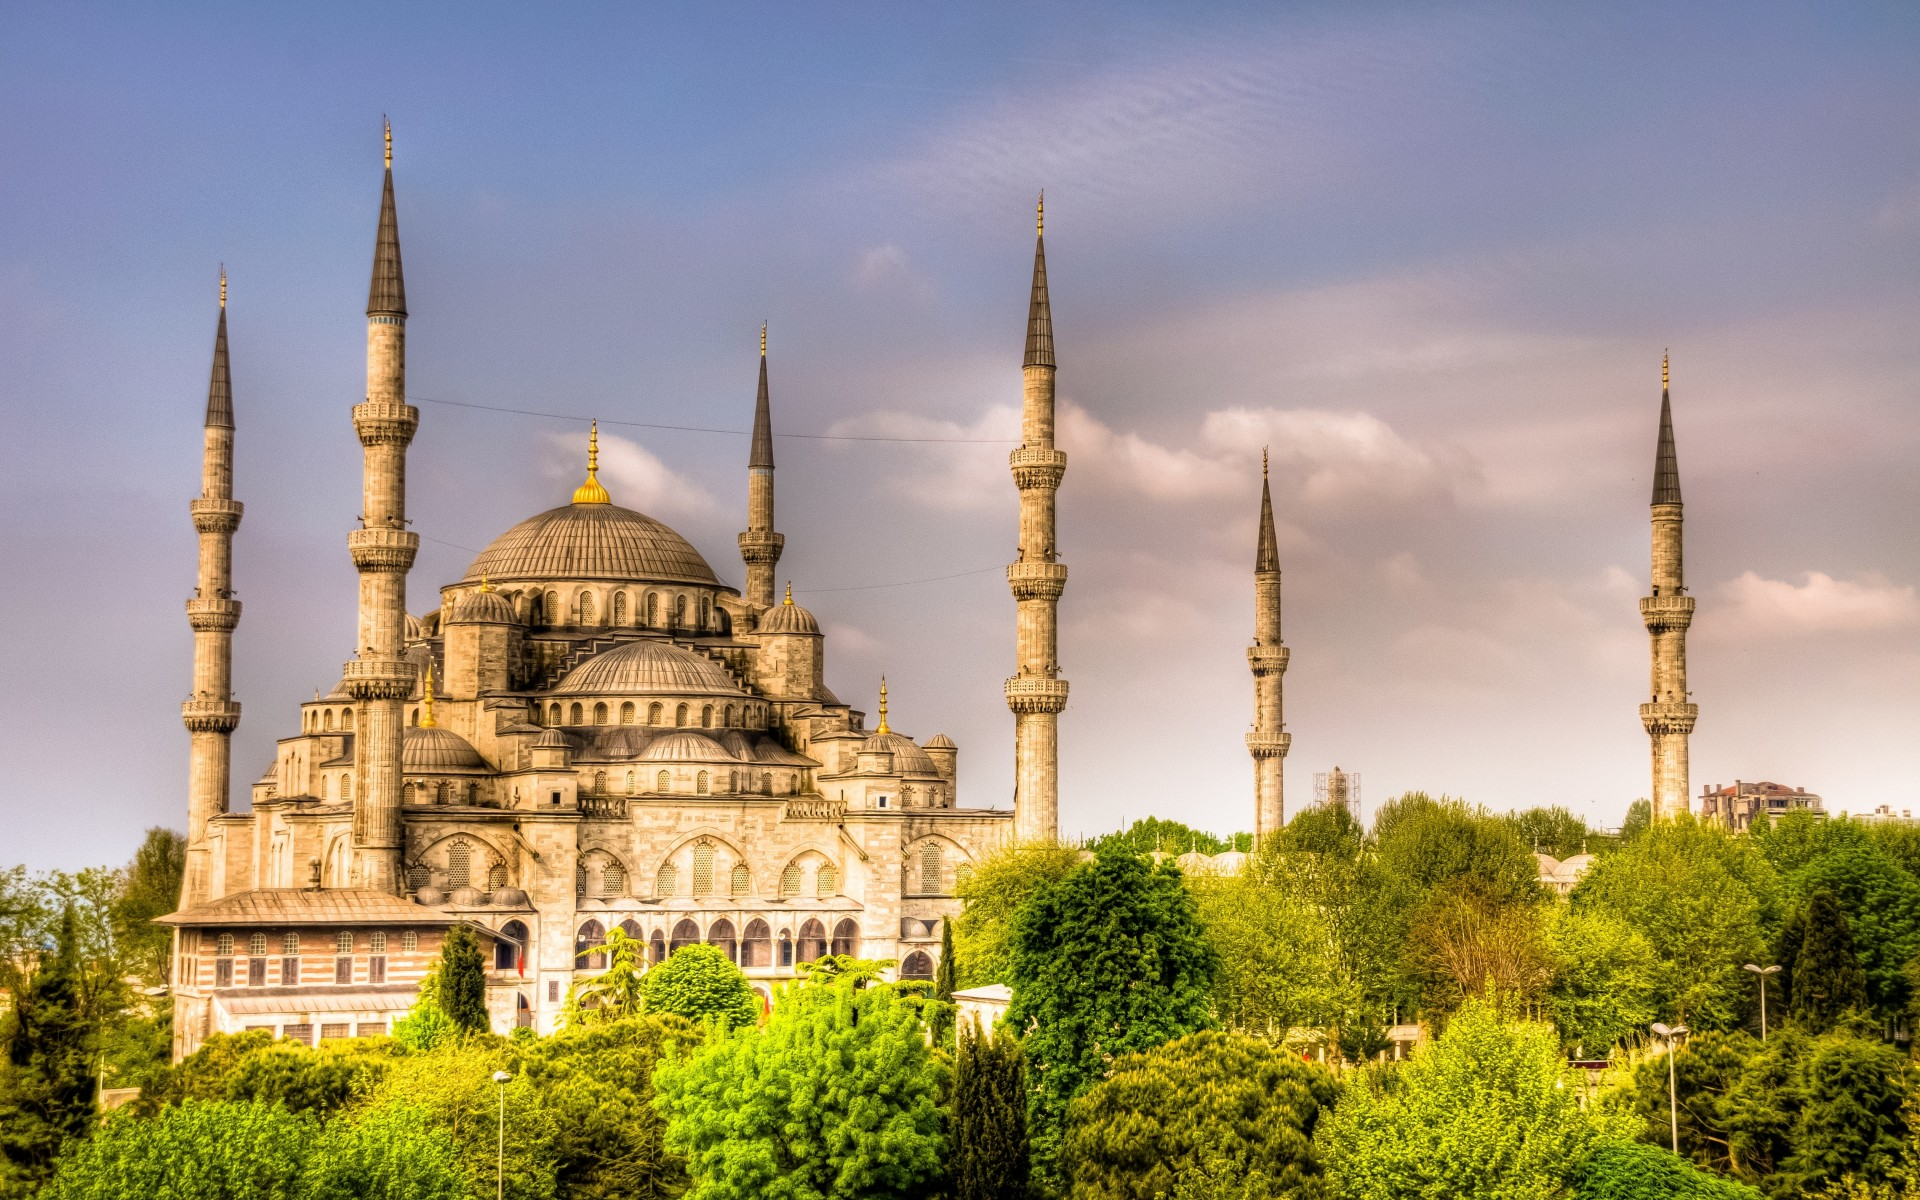 Sultan Ahmed Mosque Istanbul Turkey Full HD Wallpaper And